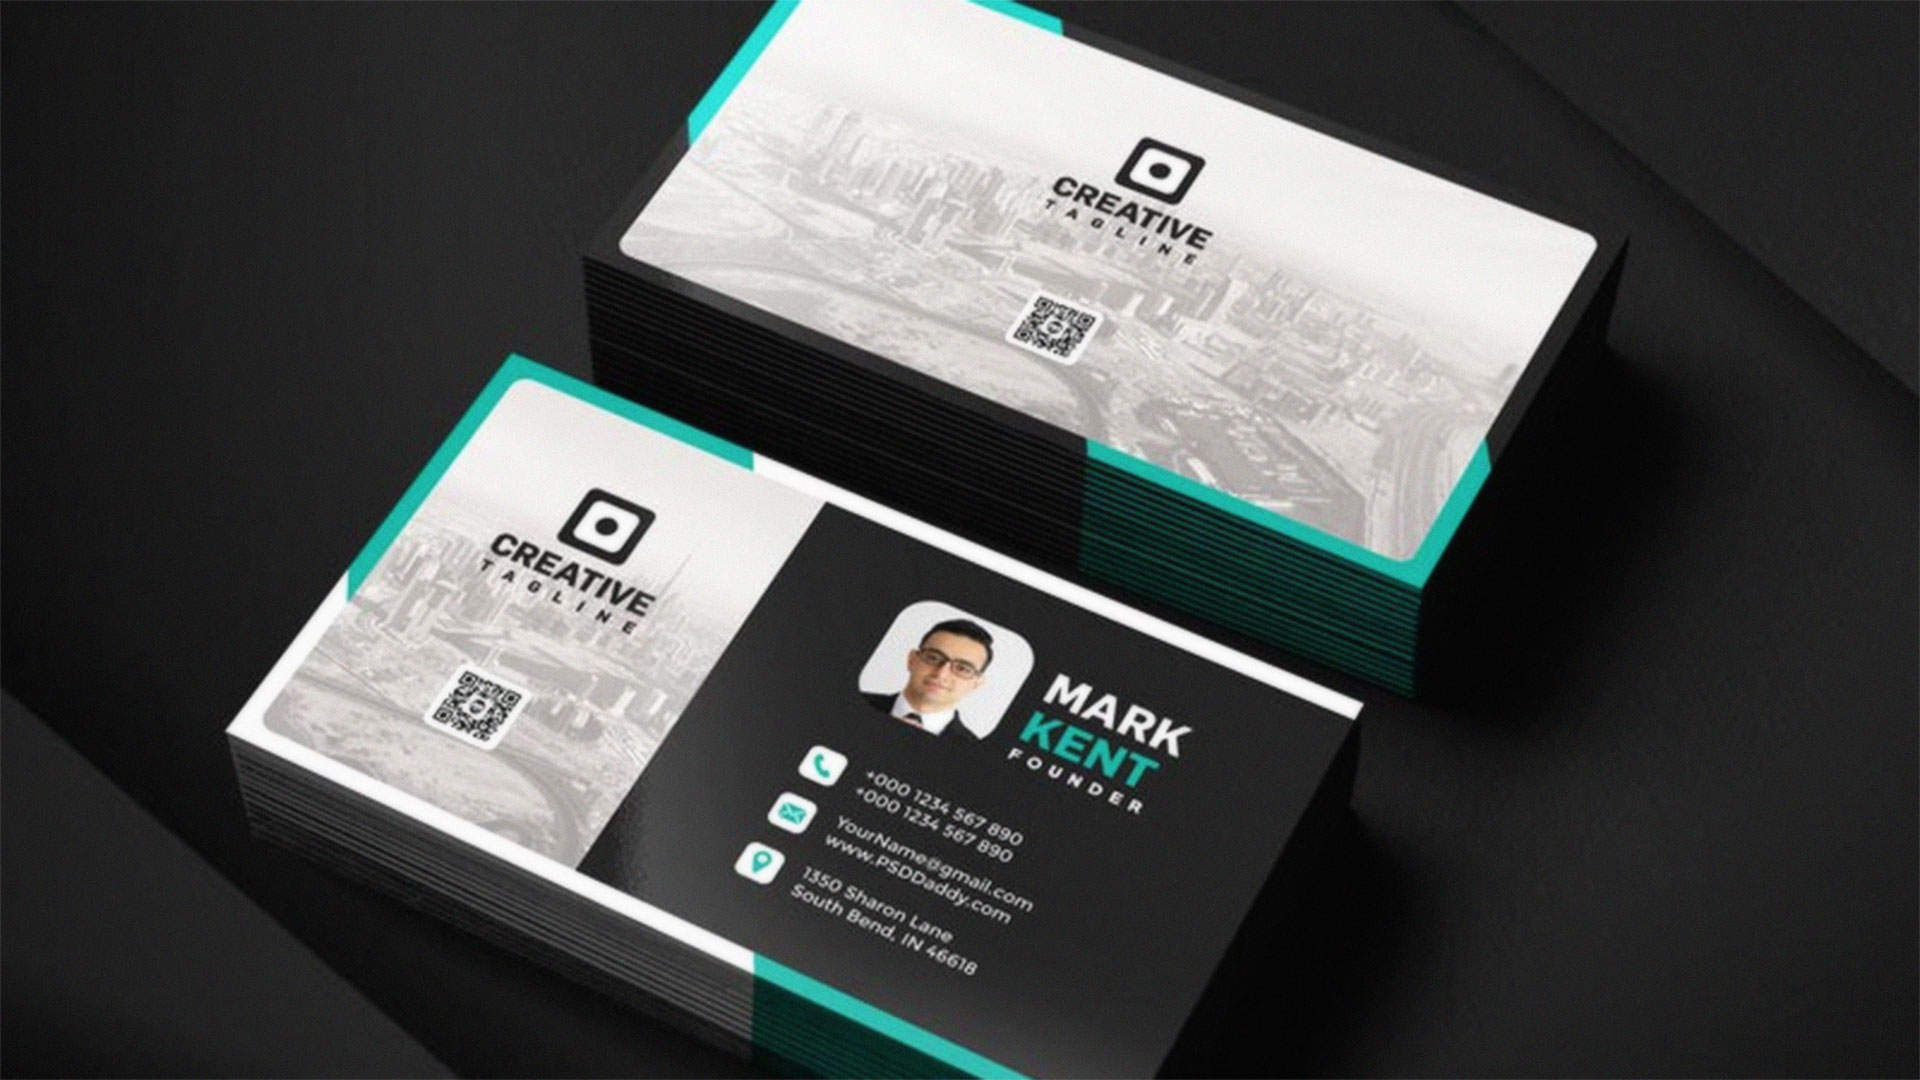 11 of the best free business card templates creative bloq friedricerecipe Choice Image